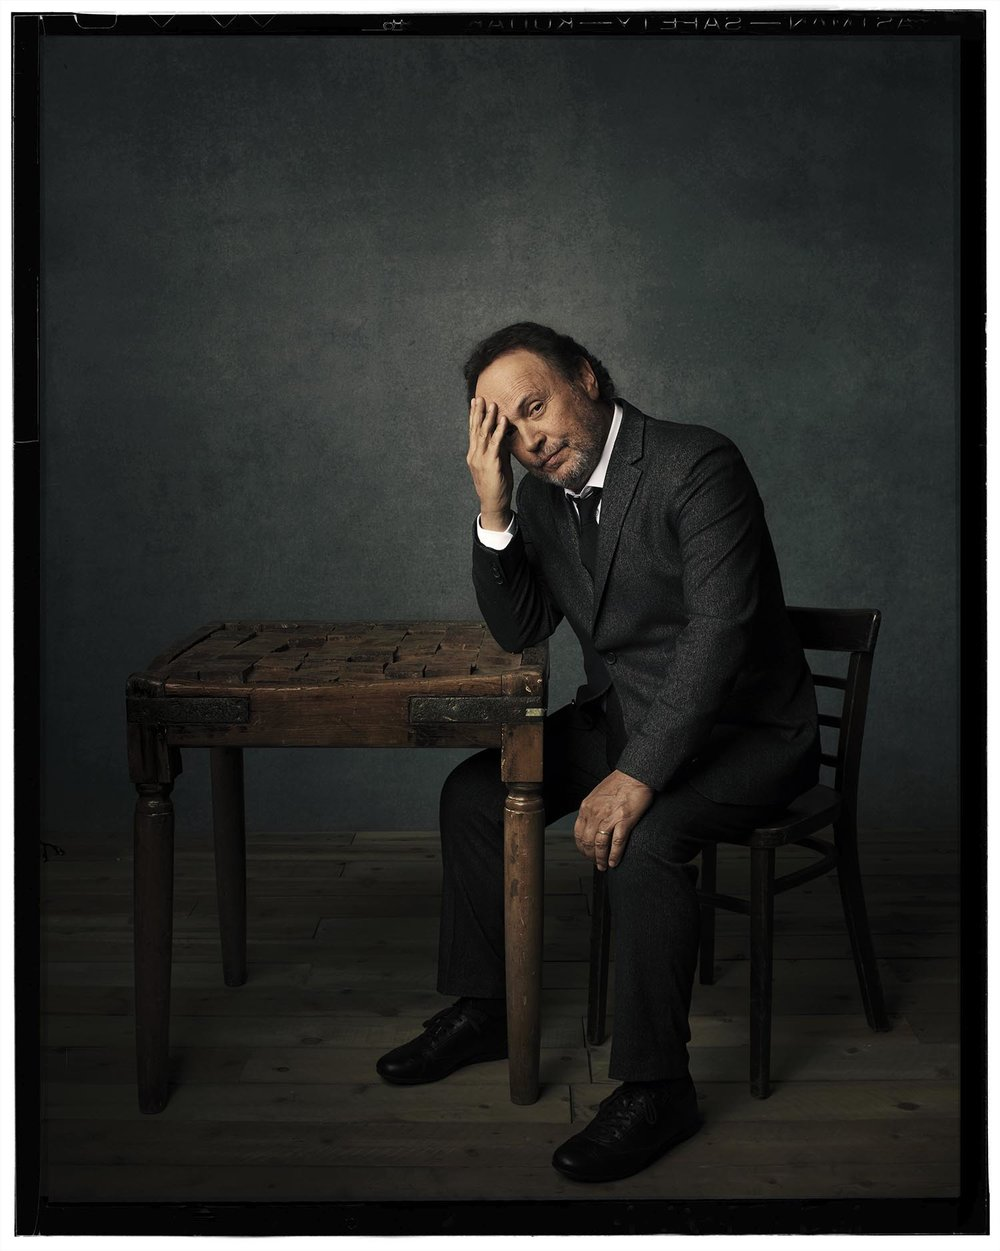 BILLY CRYSTAL_EMMY FX1007 copy copy copy copy.jpg